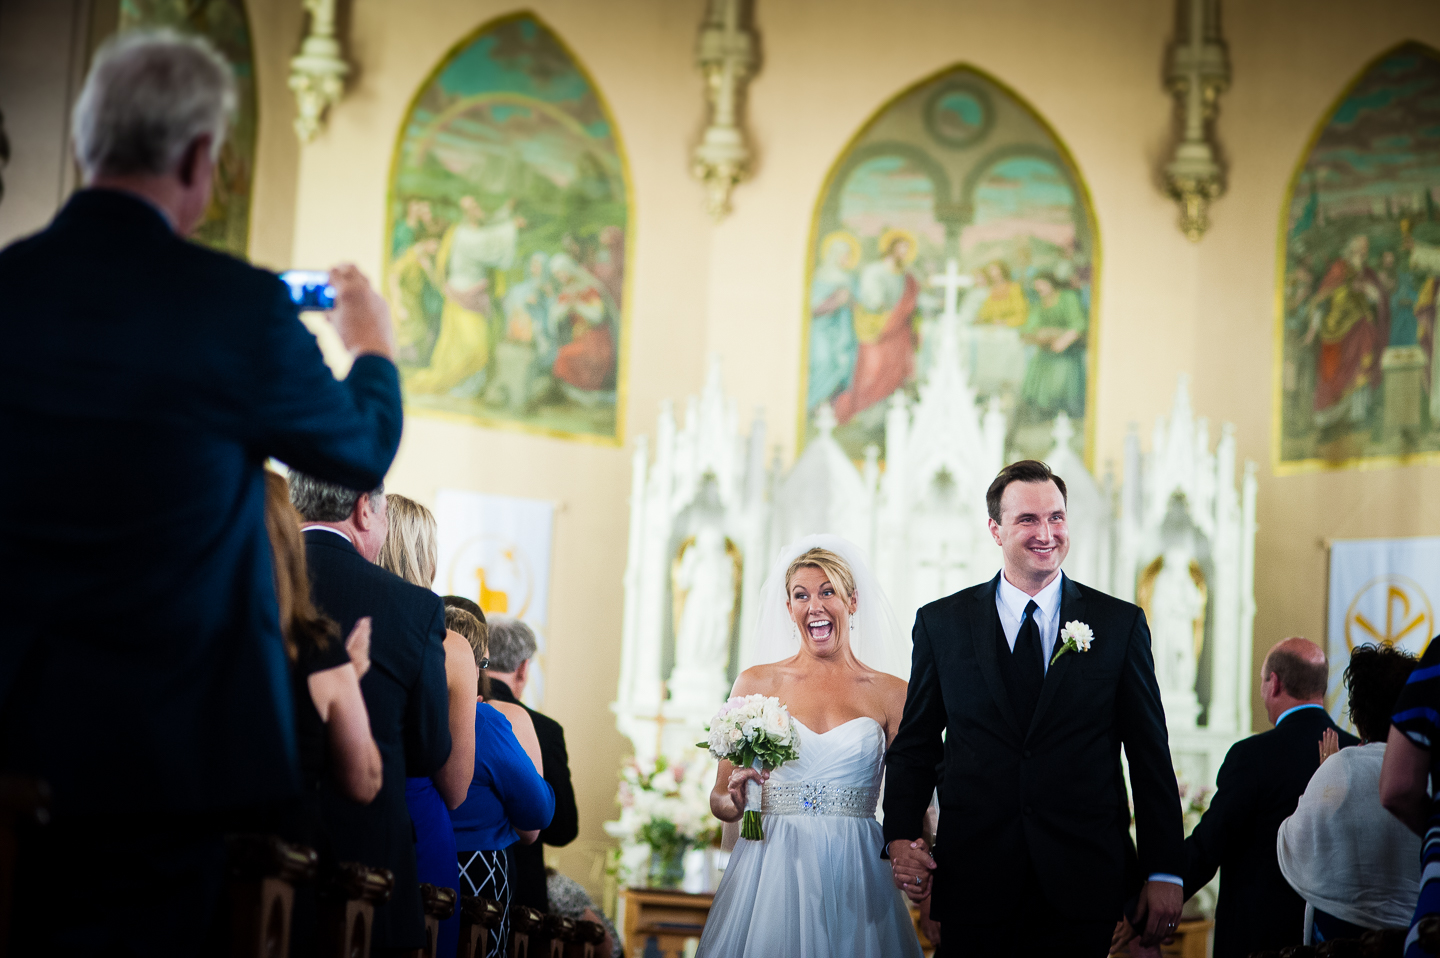 a very happy bride and groom walk down the aisle  as husband and wife